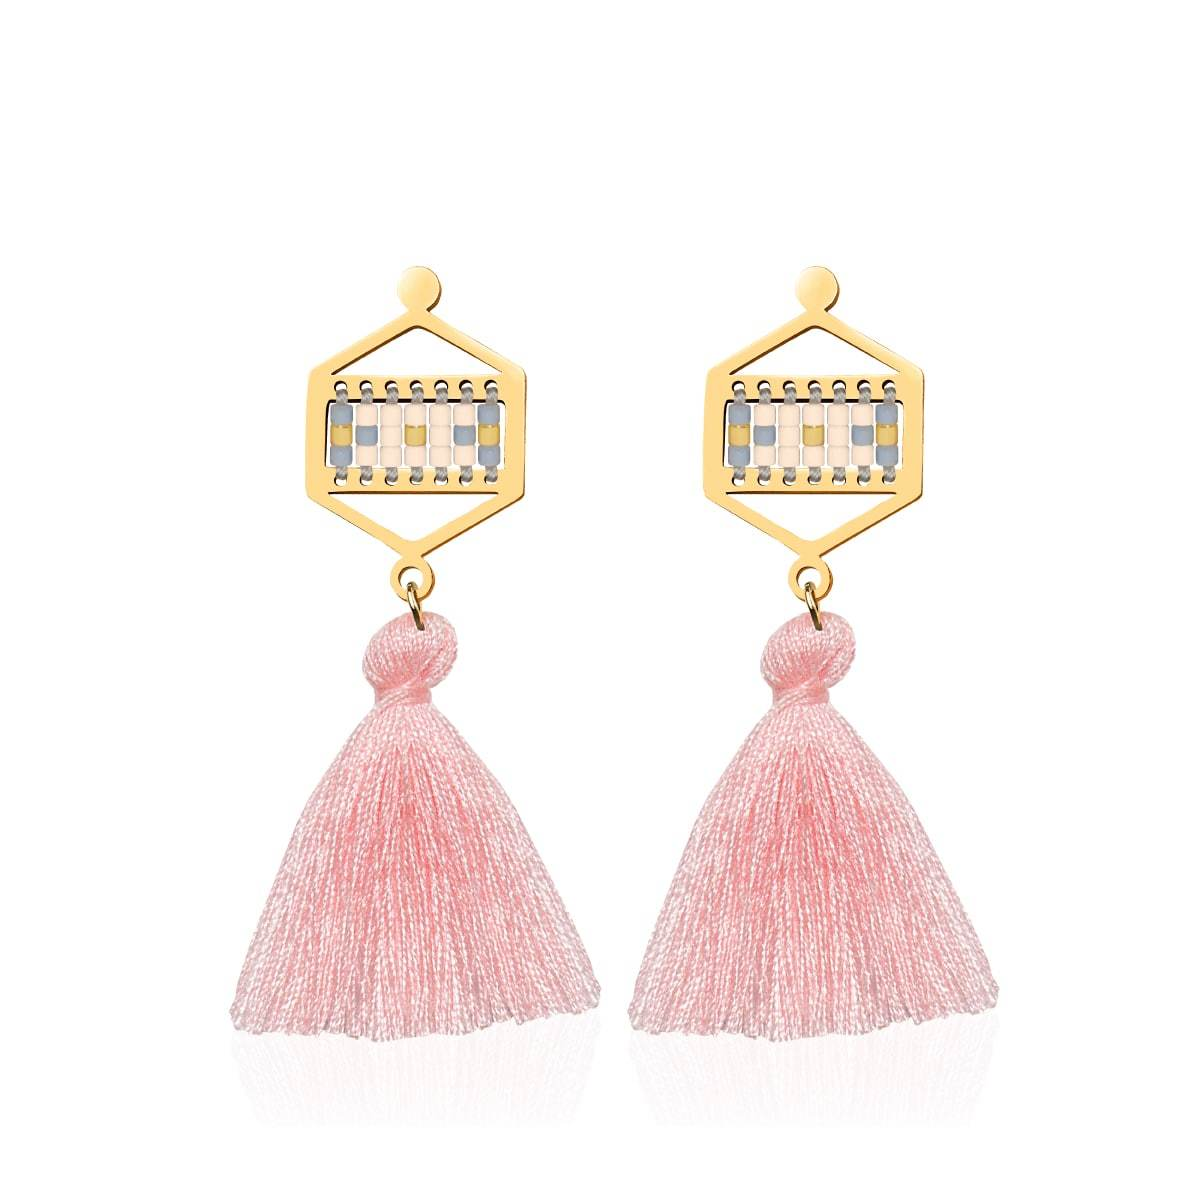 Monterey | 18k Gold | Boho Fringe Earrings